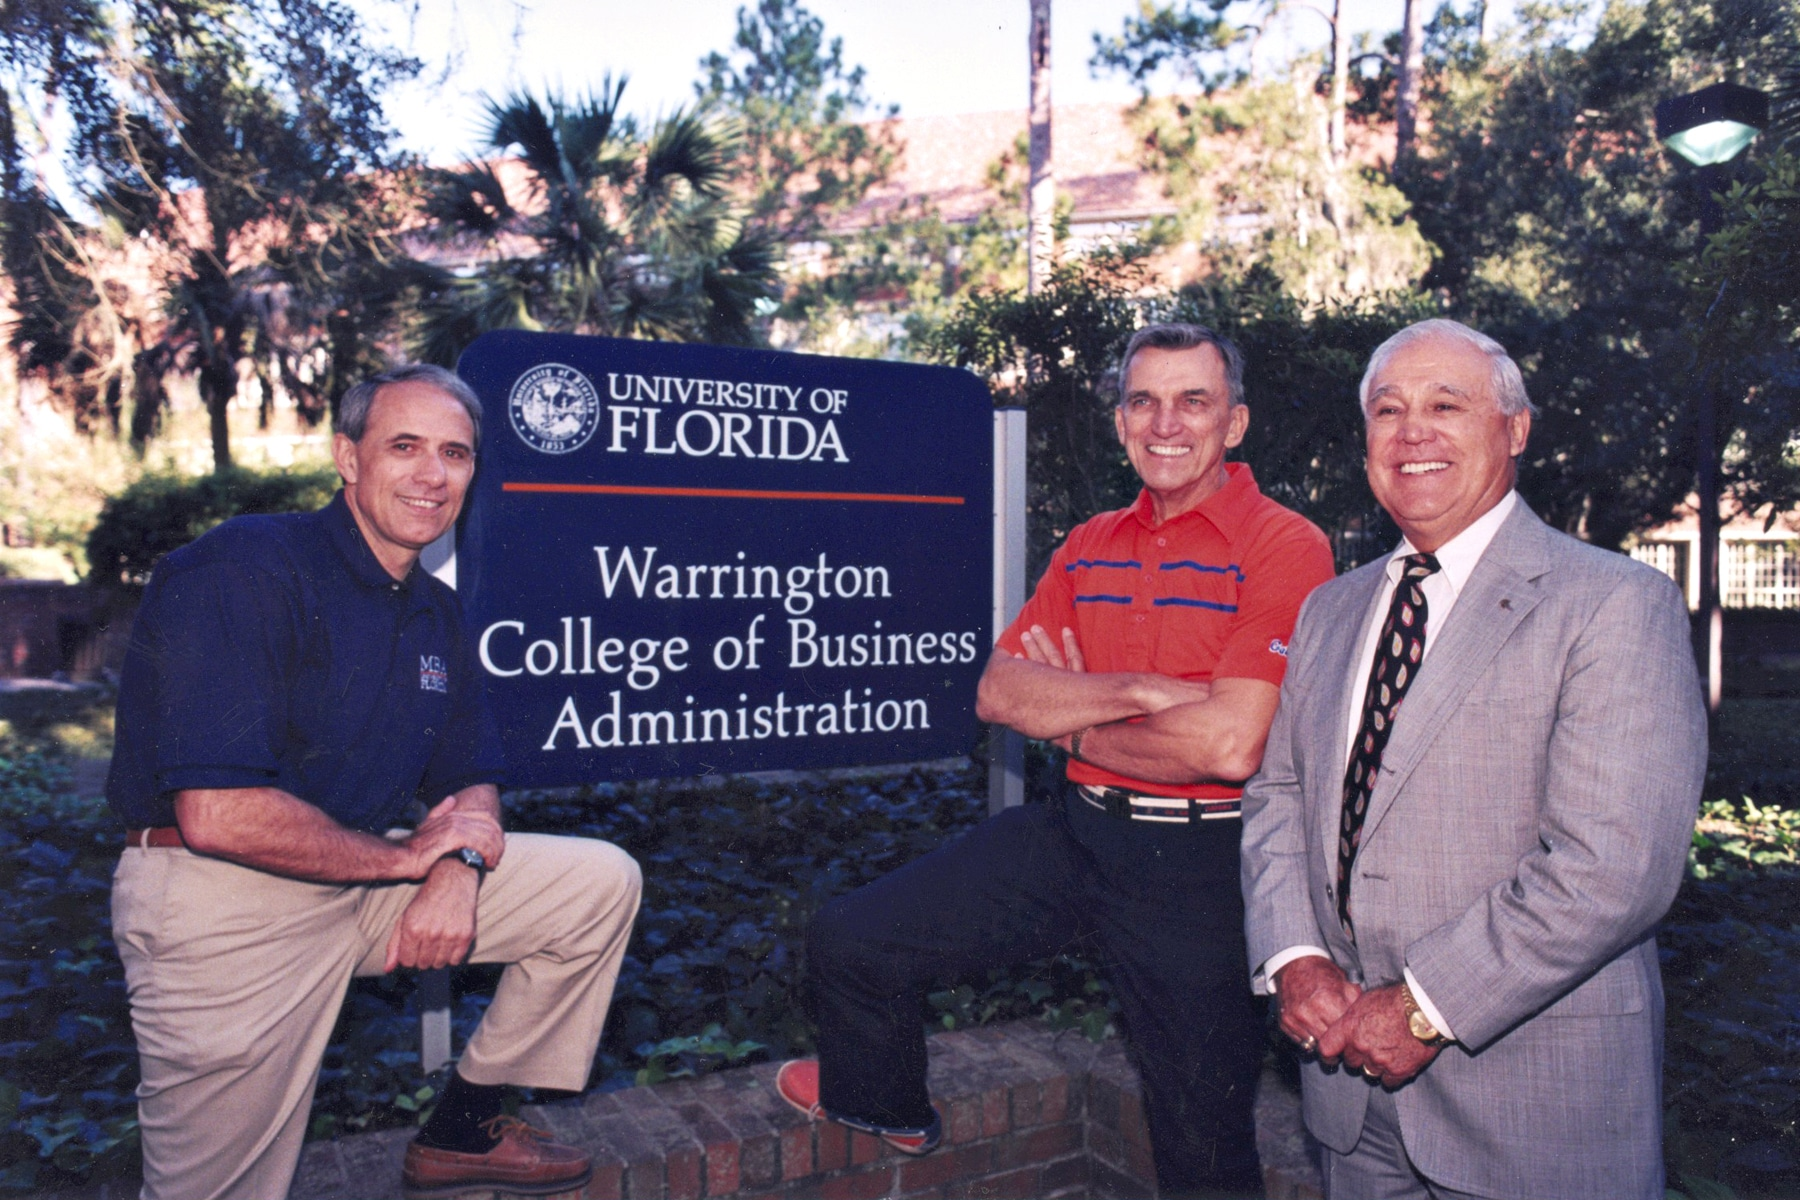 John Kraft, Al Warrington and Robert Lanzillotti pose for a photo in front of the Warrington College of Business sign.